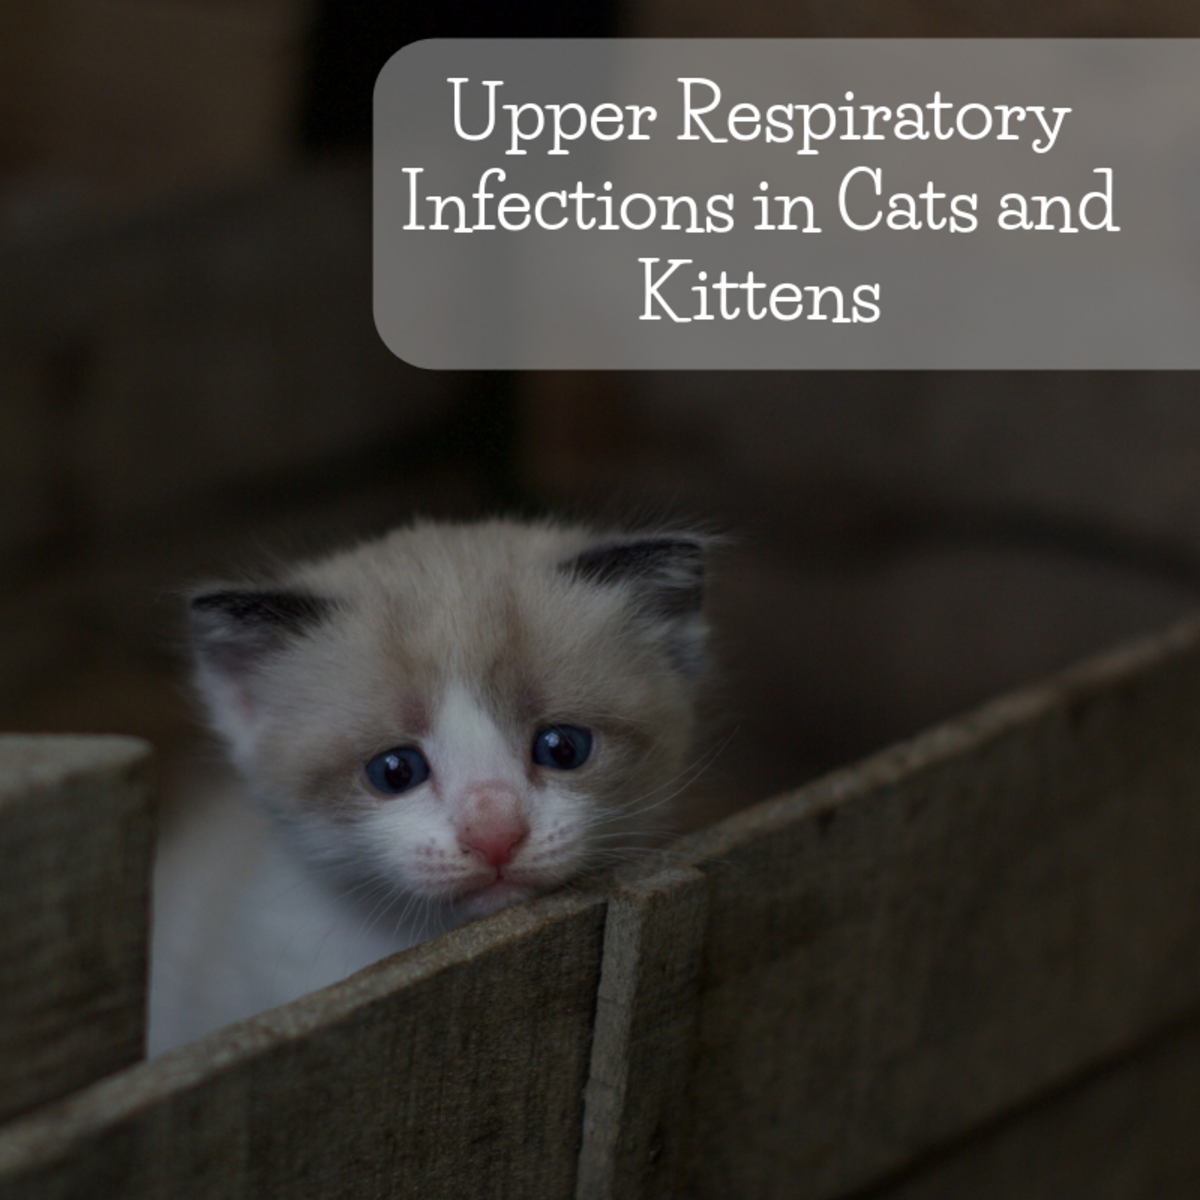 Upper Respiratory Infections in Cats and Kittens